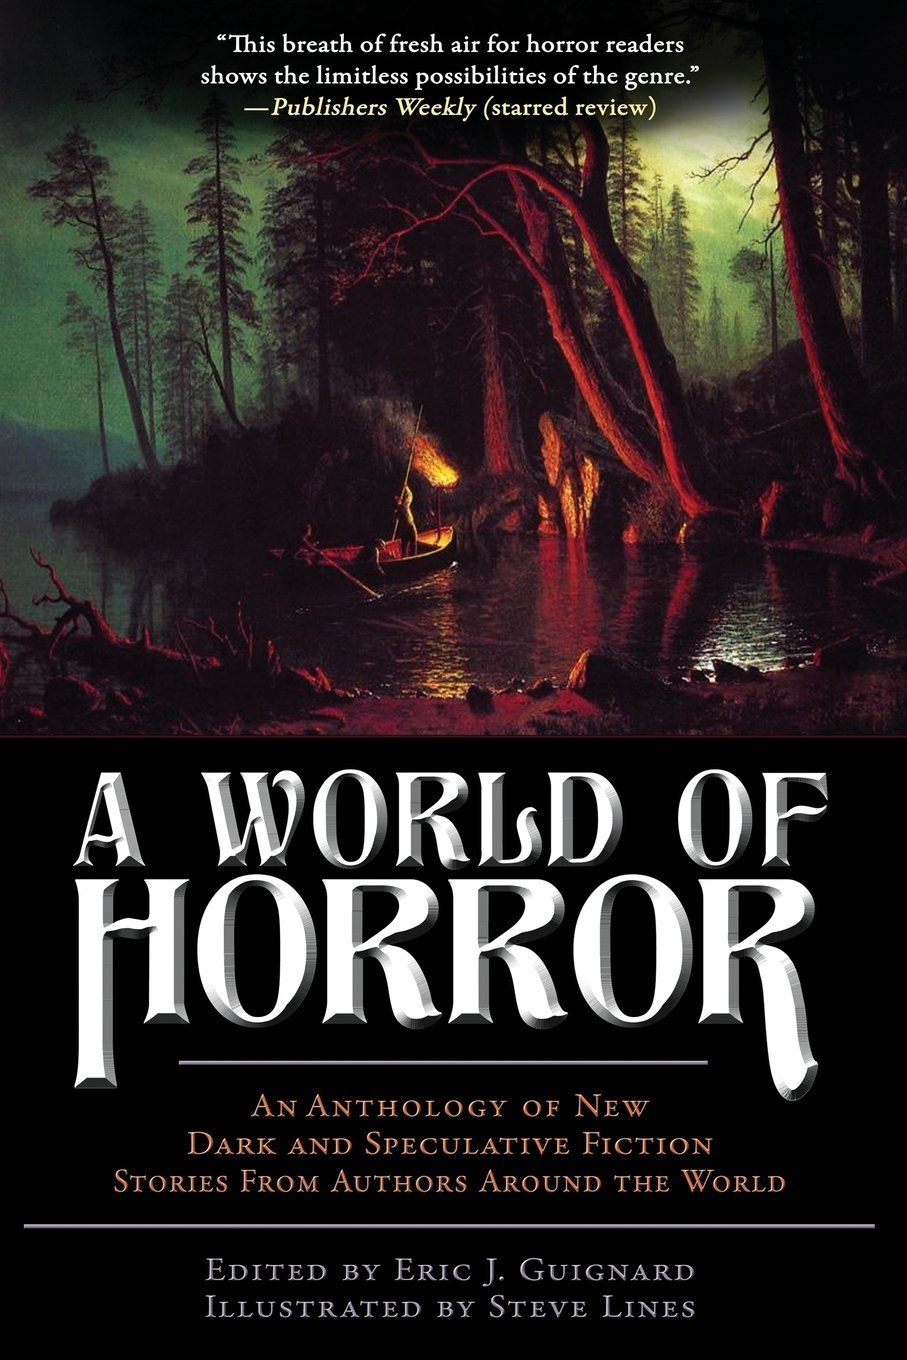 Horror is a world of horror